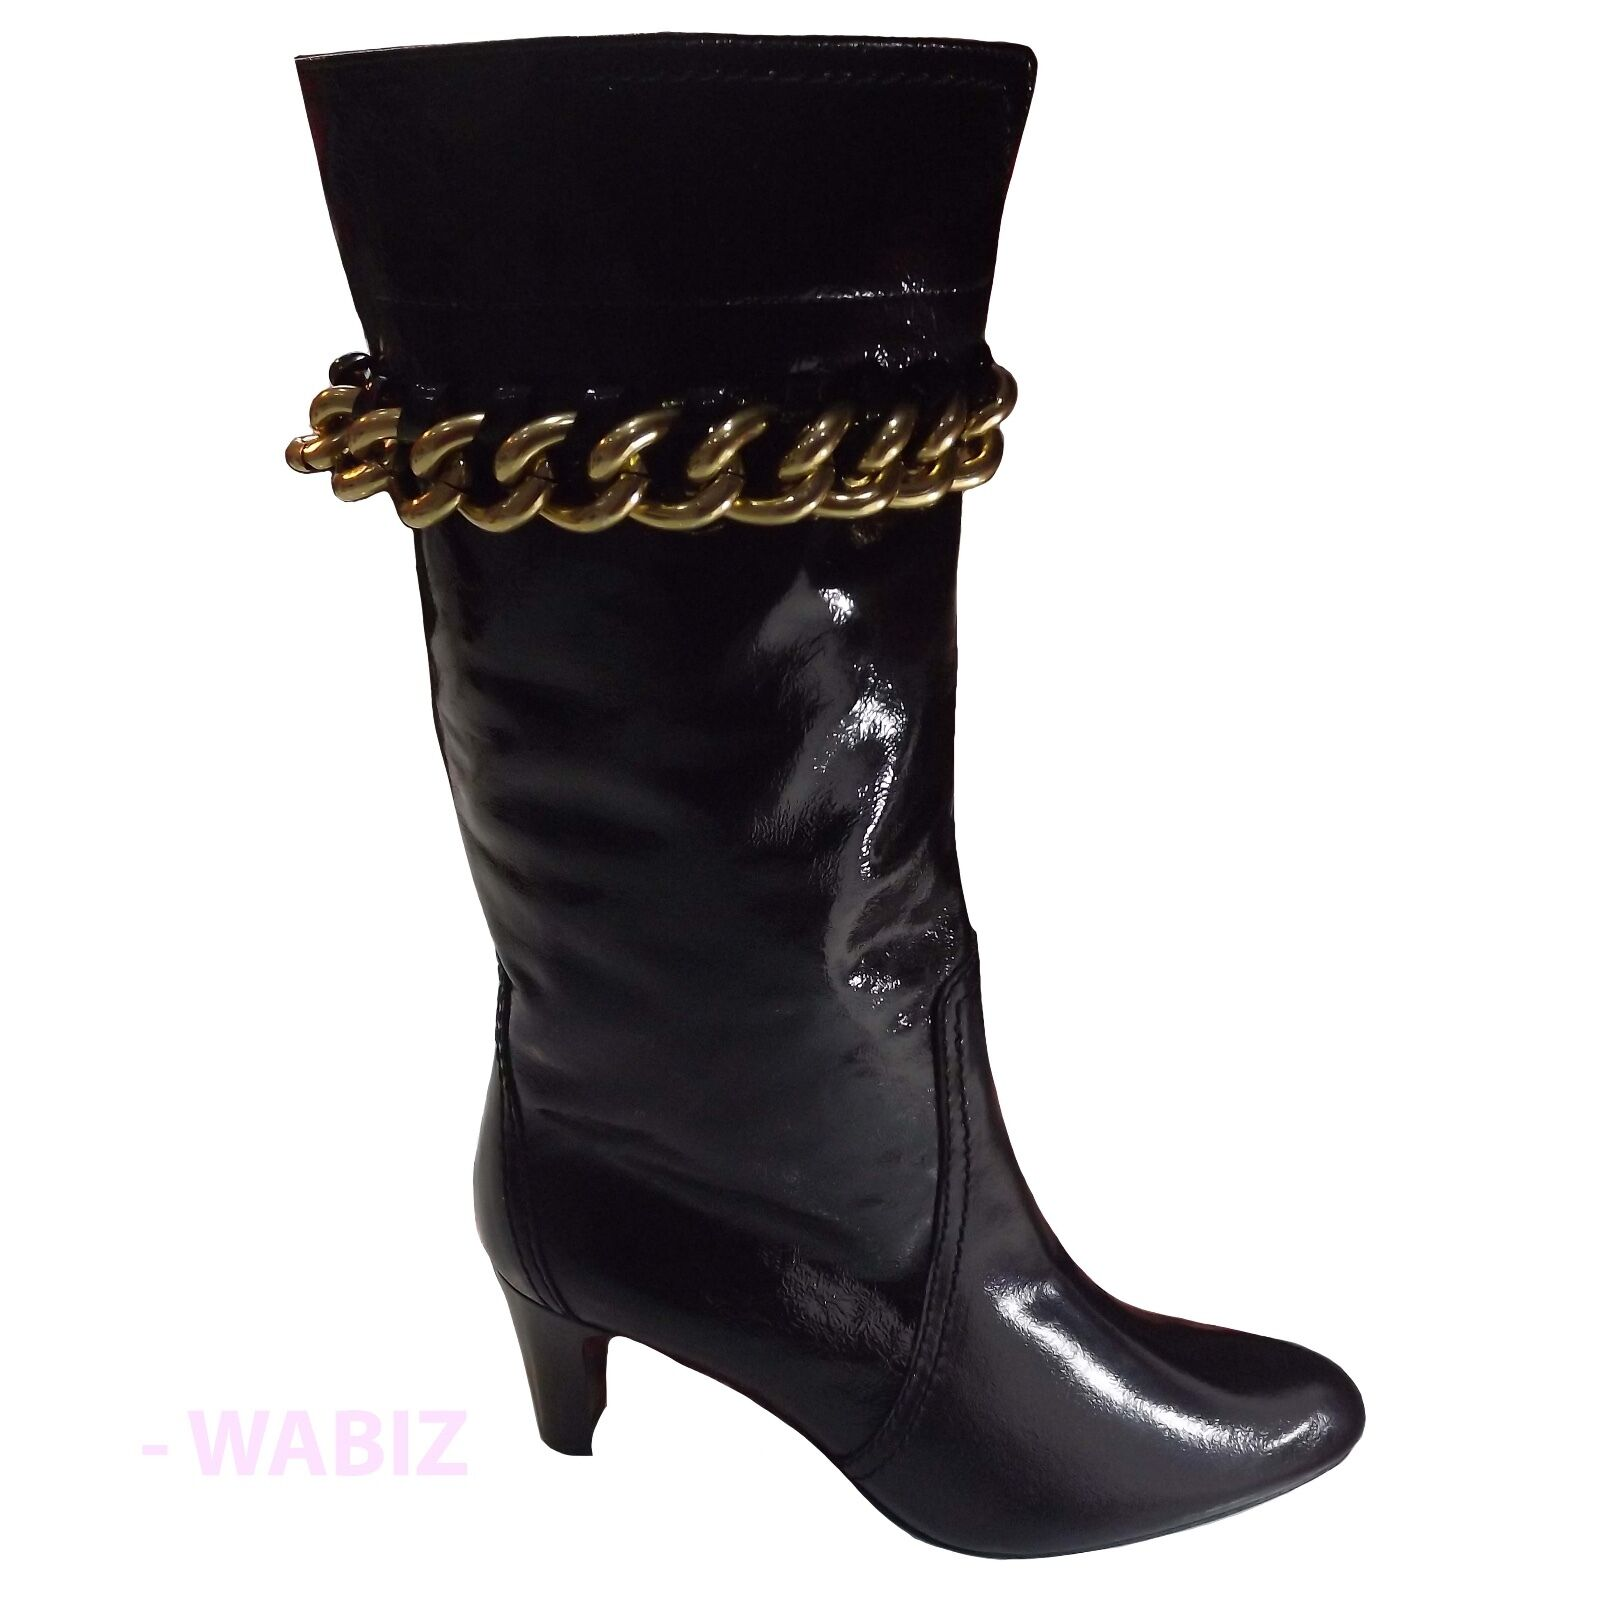 Ladies Women Designer Boots Shoes Handmade 100% Leather RRP £200 Now ONLY £29.99